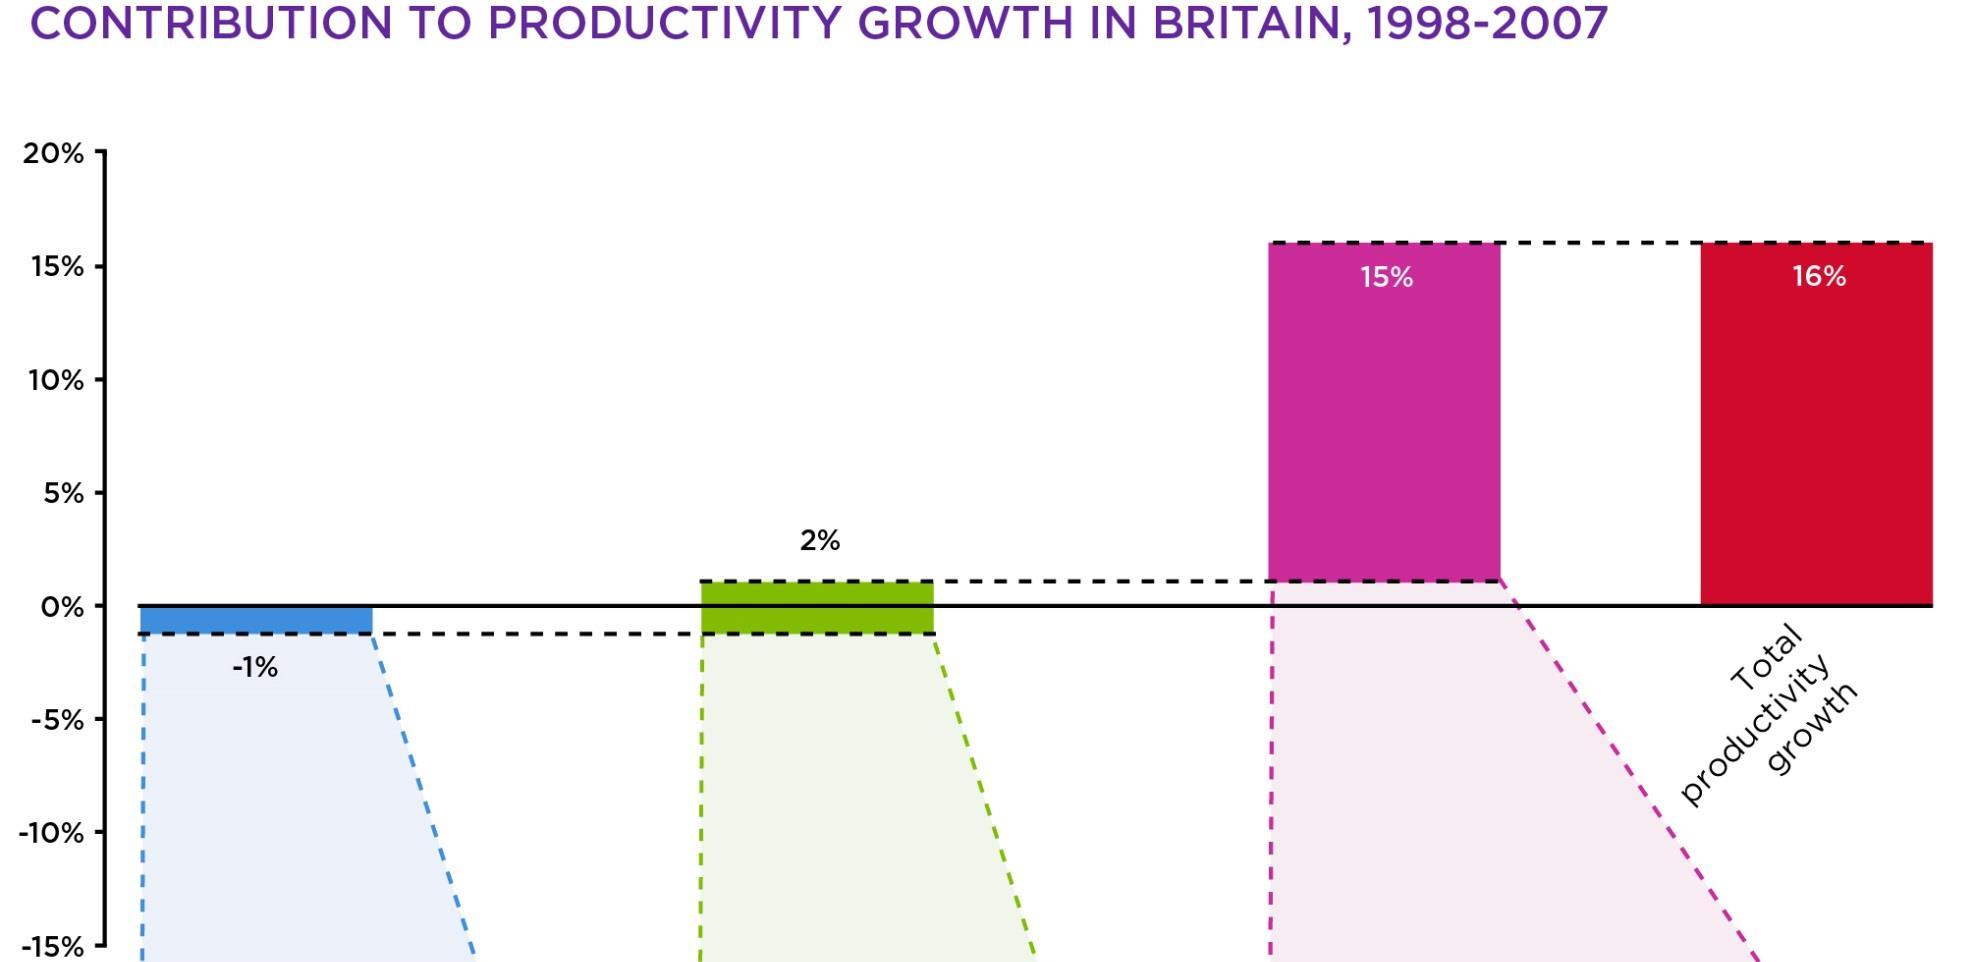 Source: Nesta/NIESR/LSE The British economy became